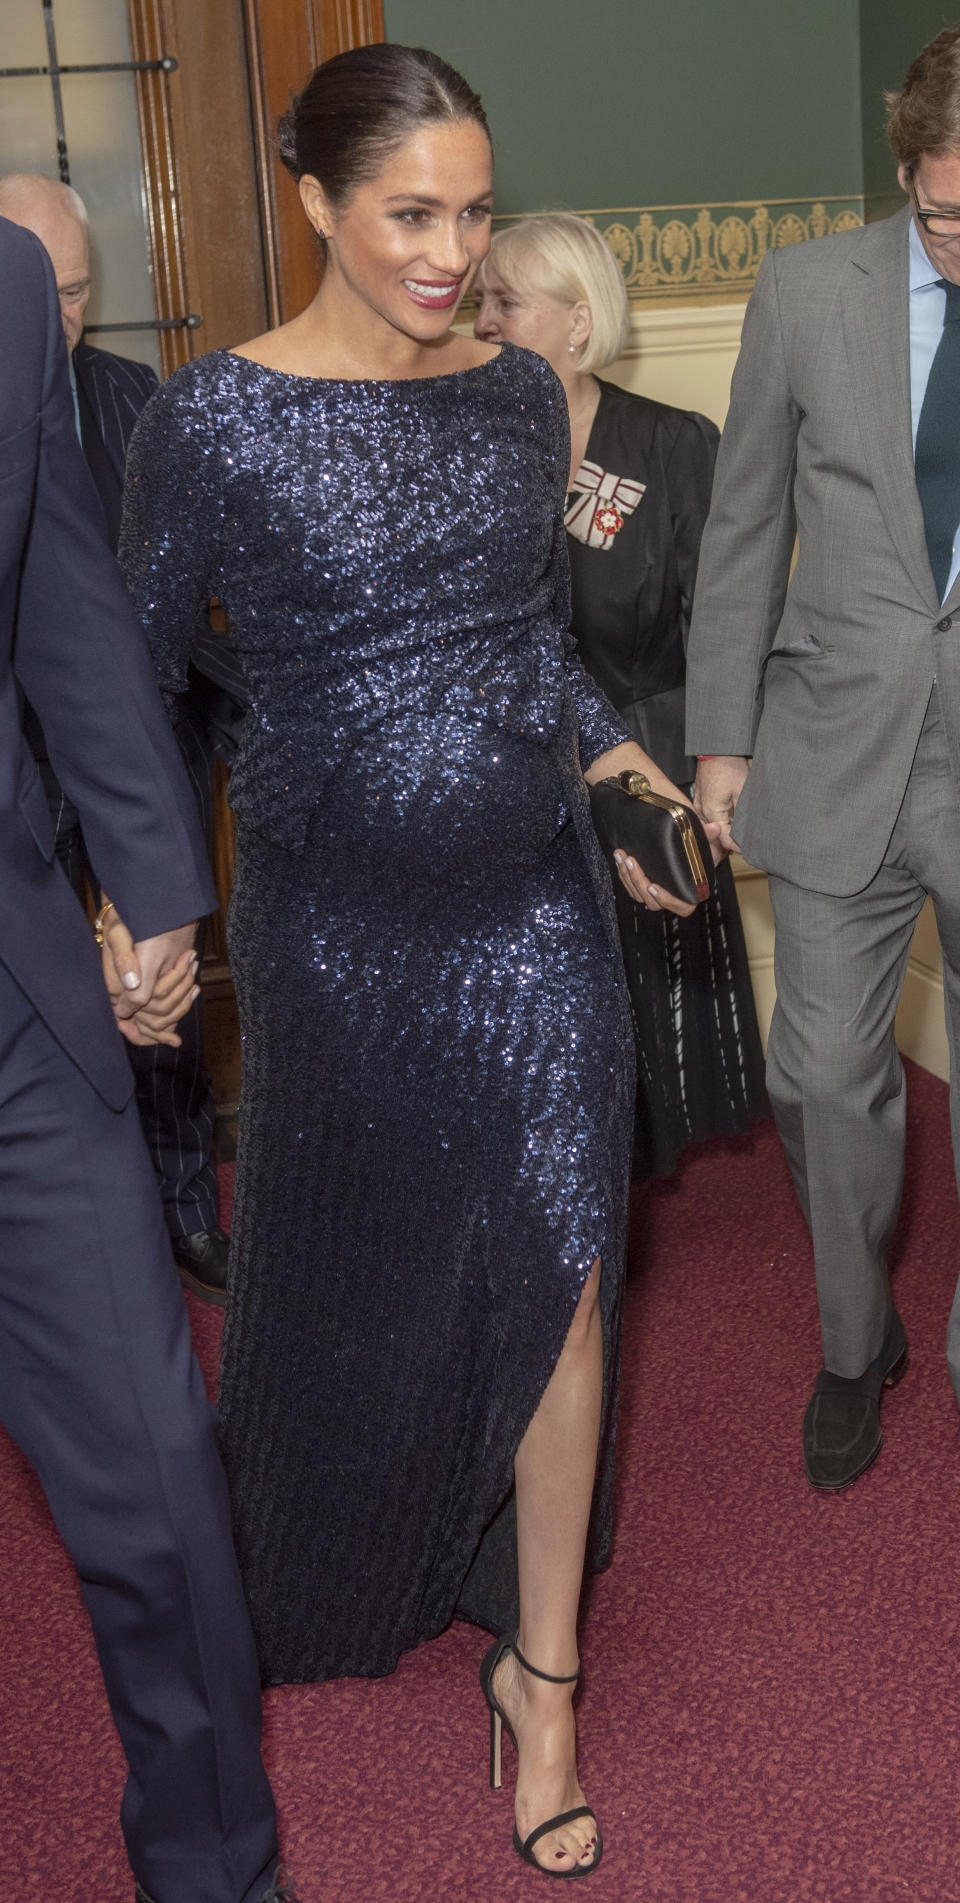 In a sartorial move which proved you don't have to give up the Hollywood sparkle when you marry into the royal family, the Duchess of Sussex waved the American flag in a £3,495 Brandon Maxwell sequin gown at the evening event. <em>[Photo: Getty]</em>